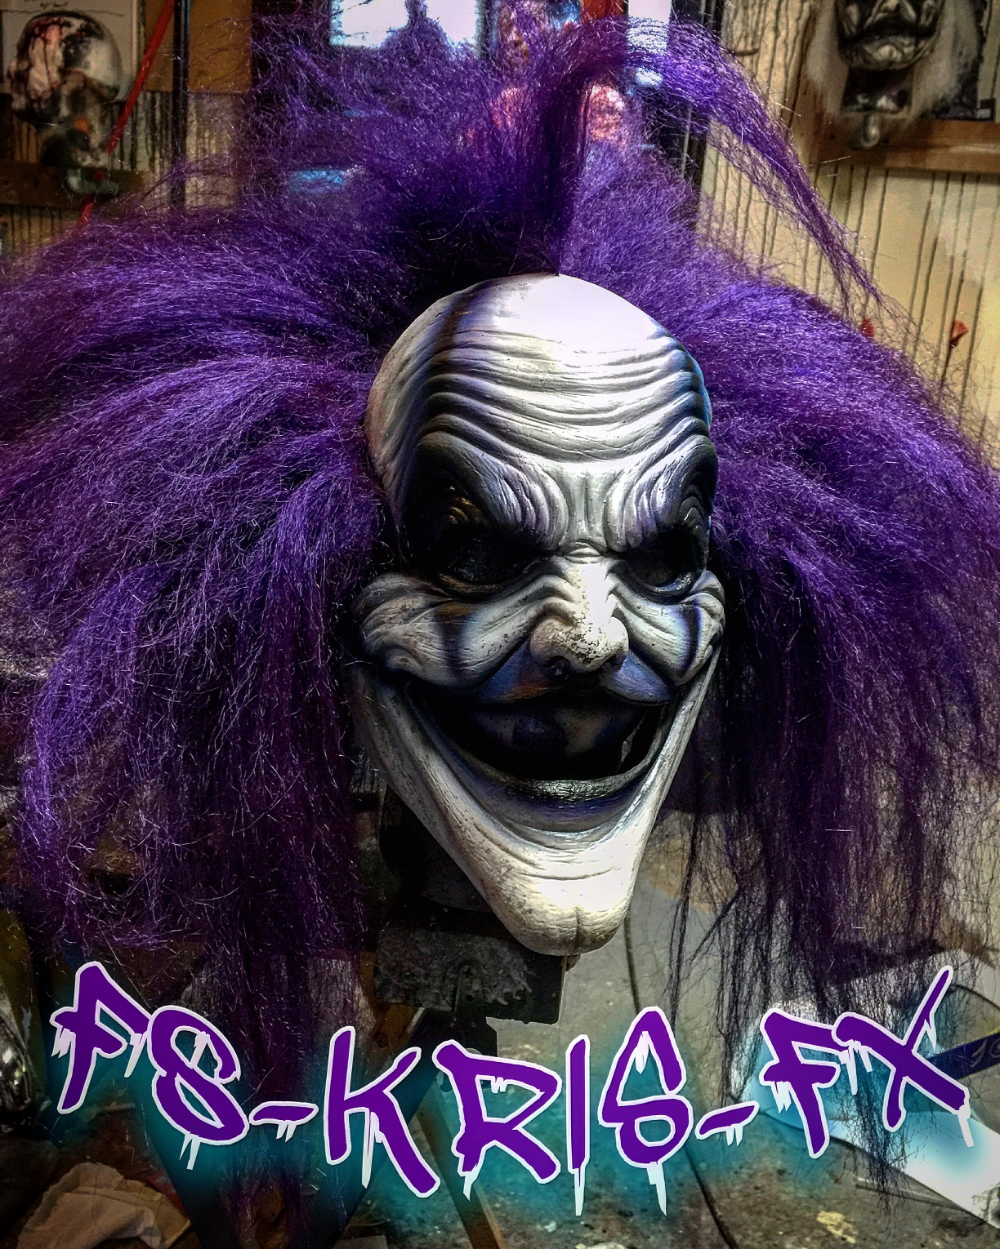 Jokes On You Clown Mask Clown mask, Jokes, Custom paint jobs